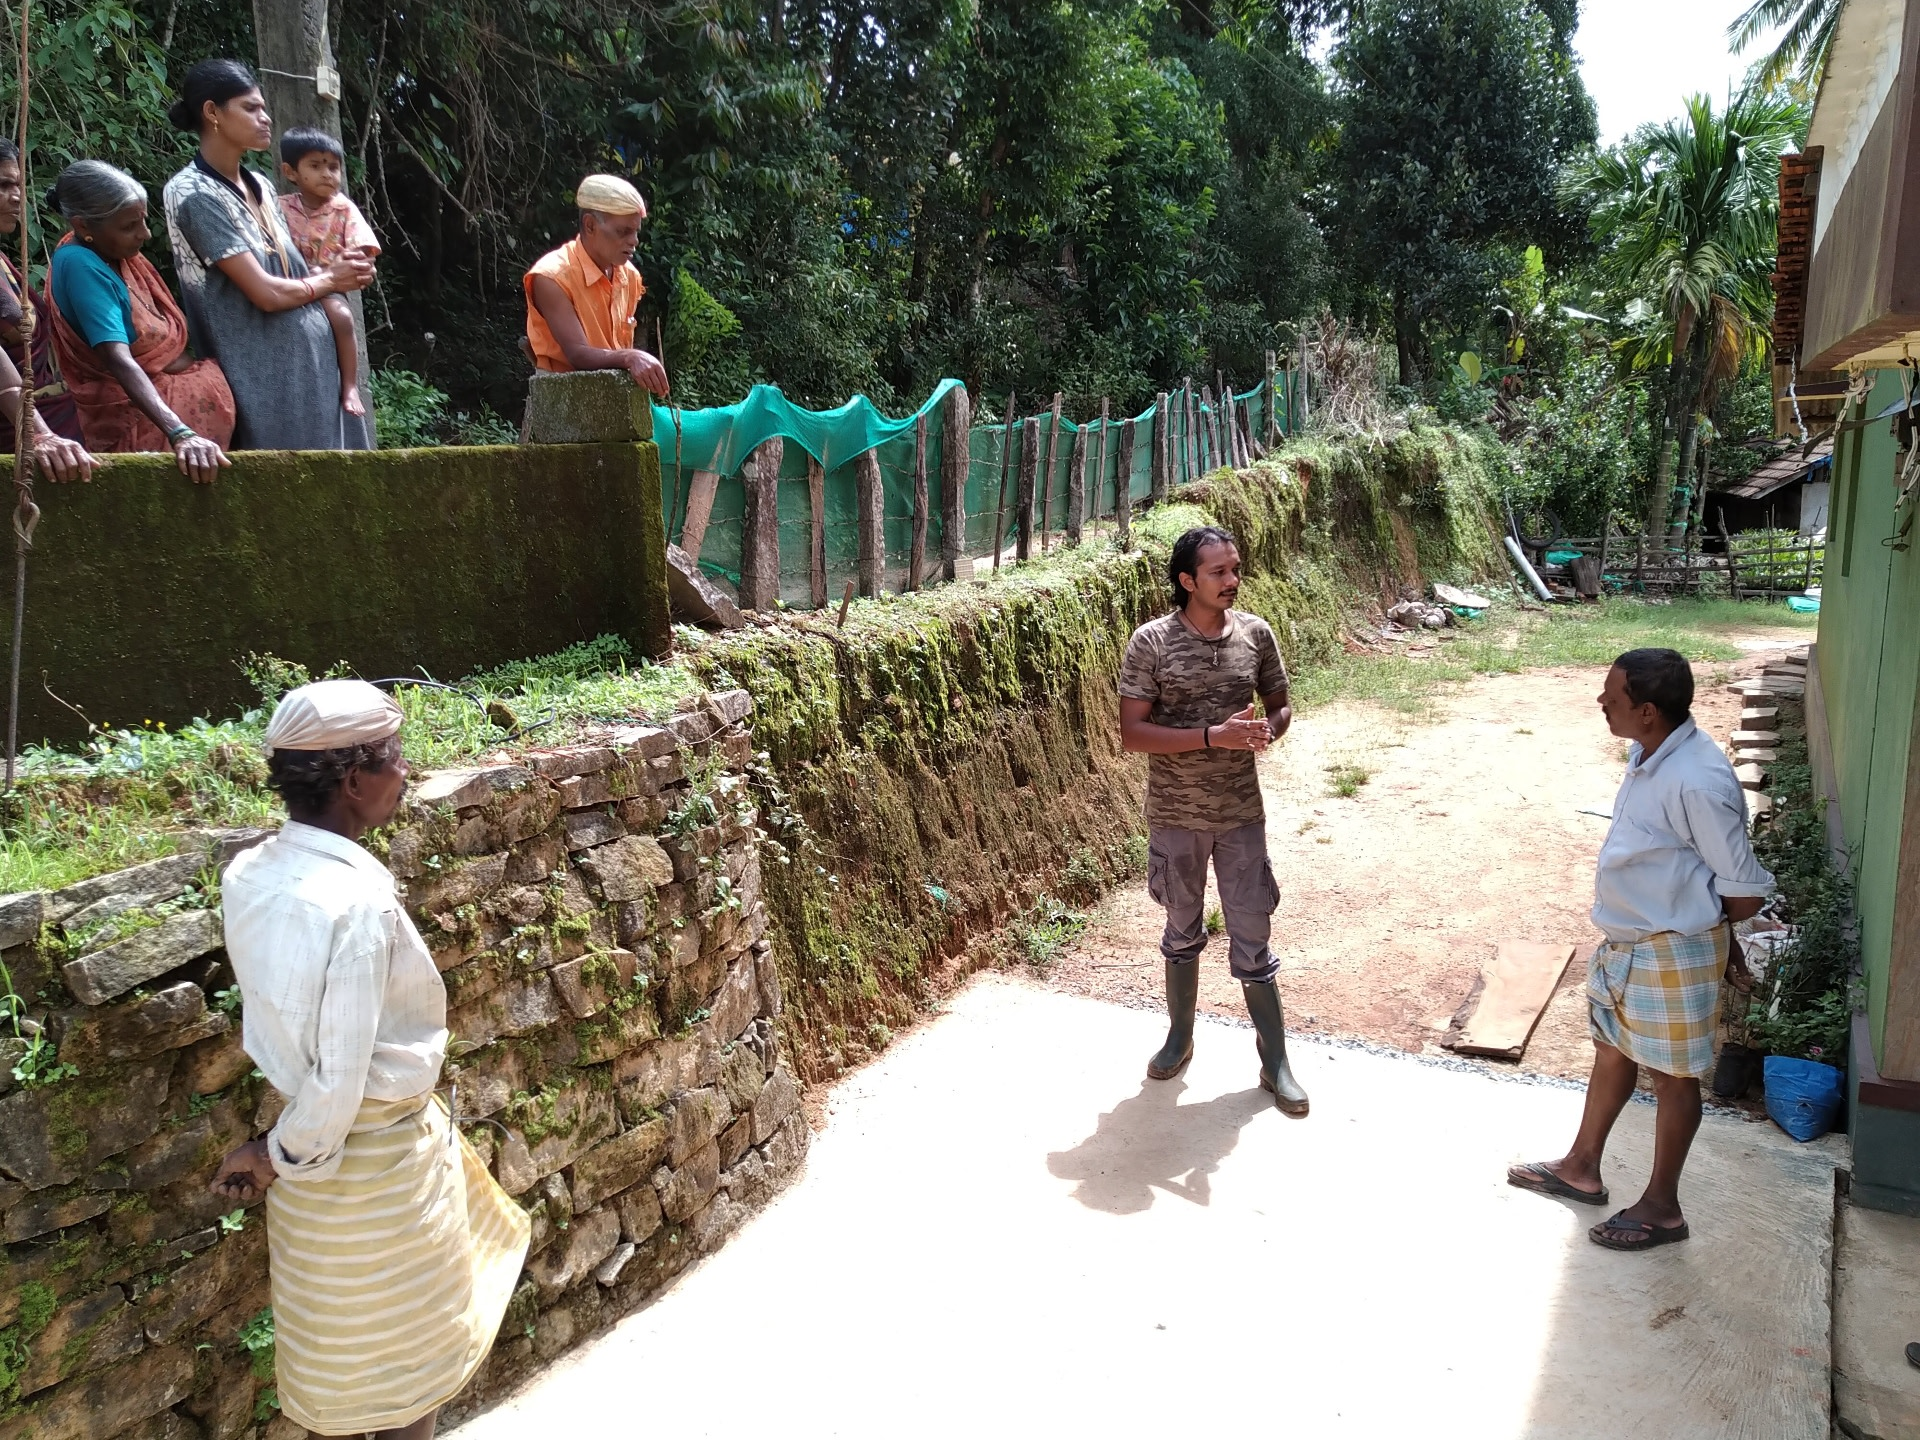 Ajay explains to local people the homing instinct of the king cobra and why it is important to release the snake close to where it is found.  Photo: Nisarg Prakash